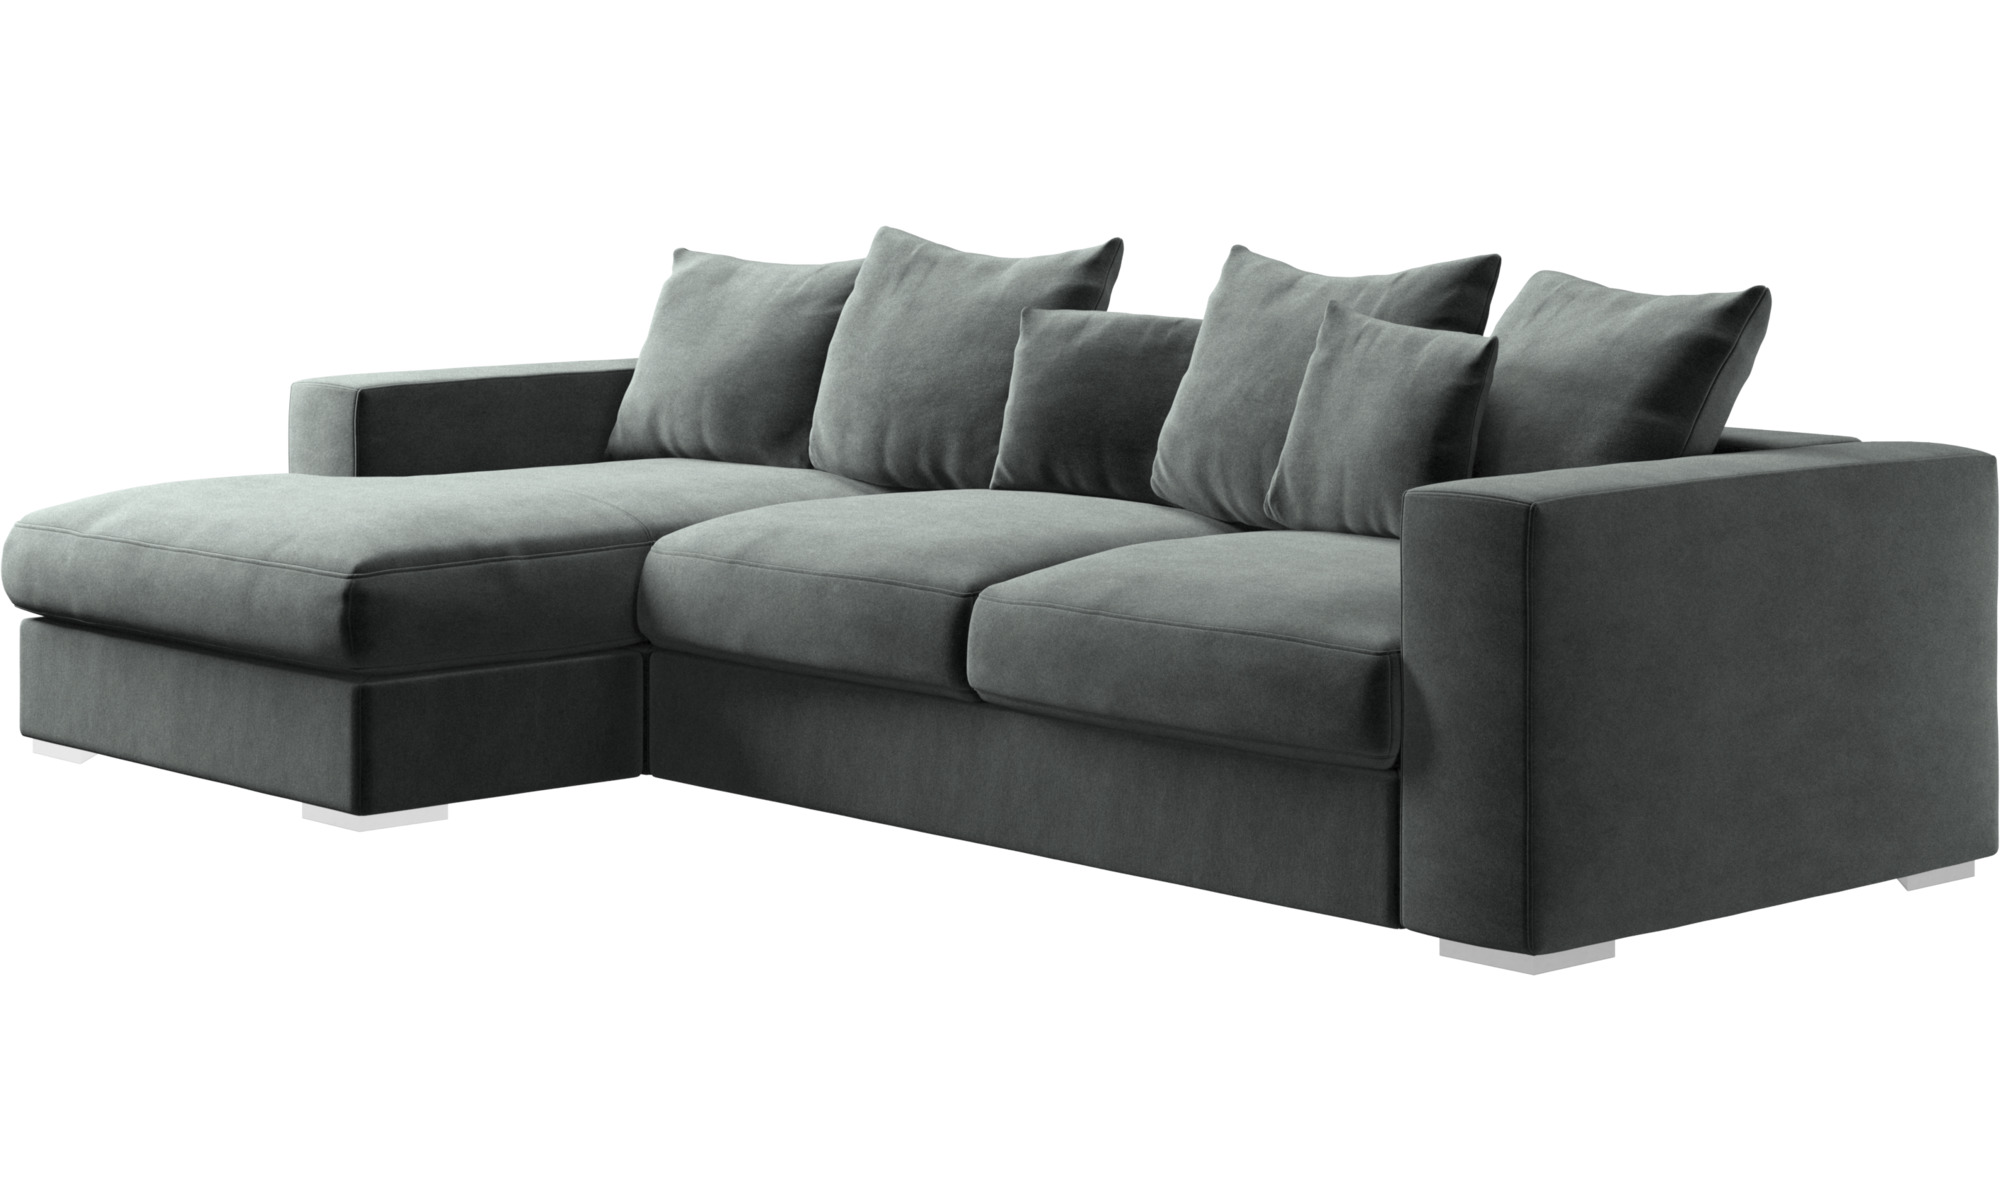 Sofa With Chaise Lounge Chaise Lounge Sofas Cenova Sofa With Resting Unit